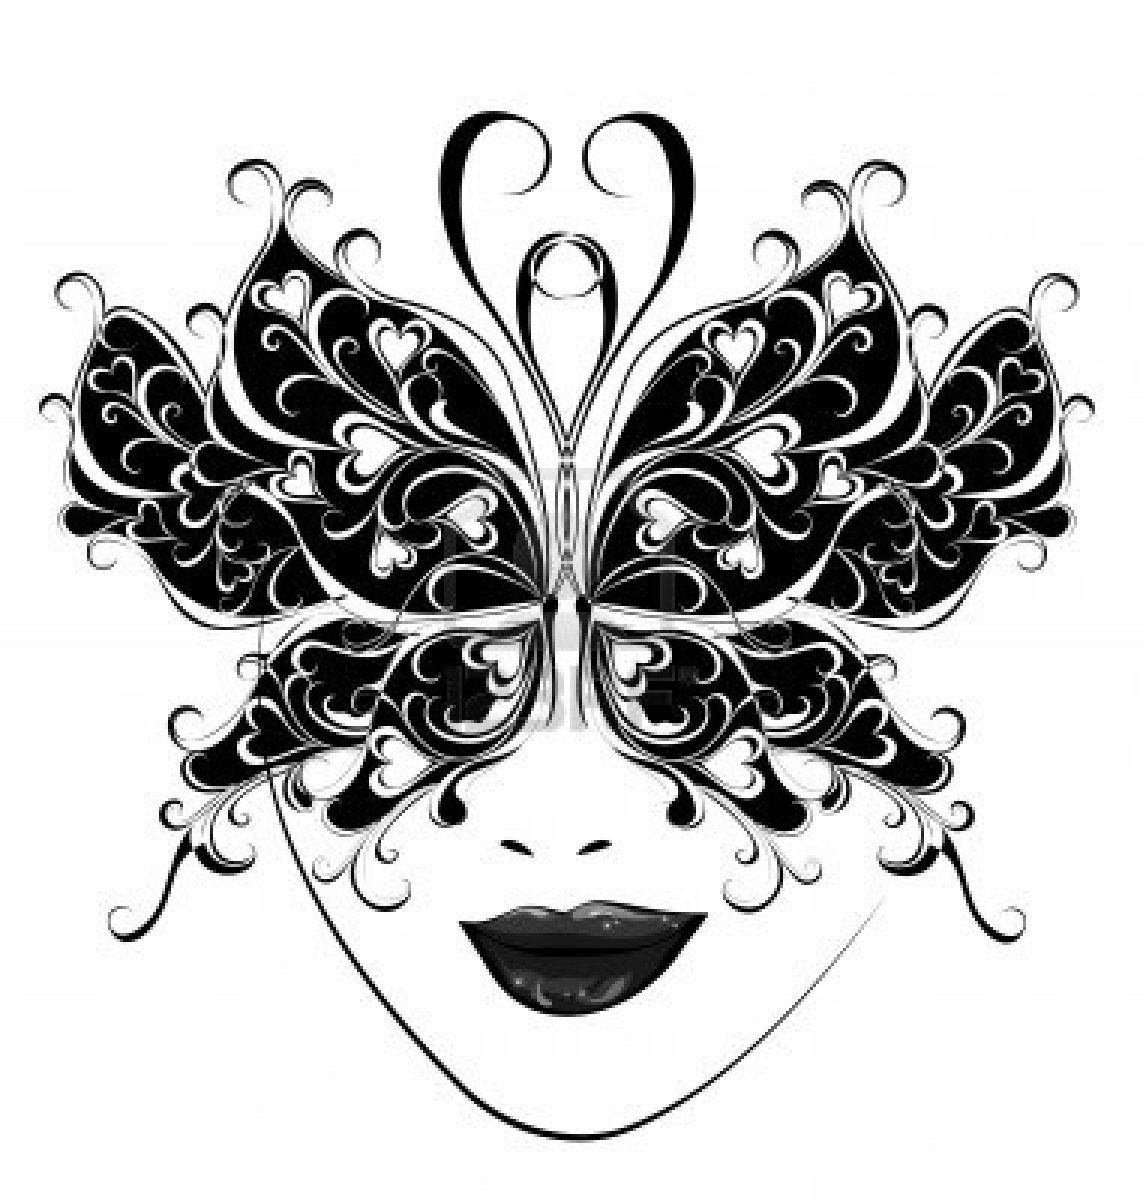 medium resolution of illustration of carnival mask butterfly masks for a masquerade vector art clipart and stock vectors image 16258130